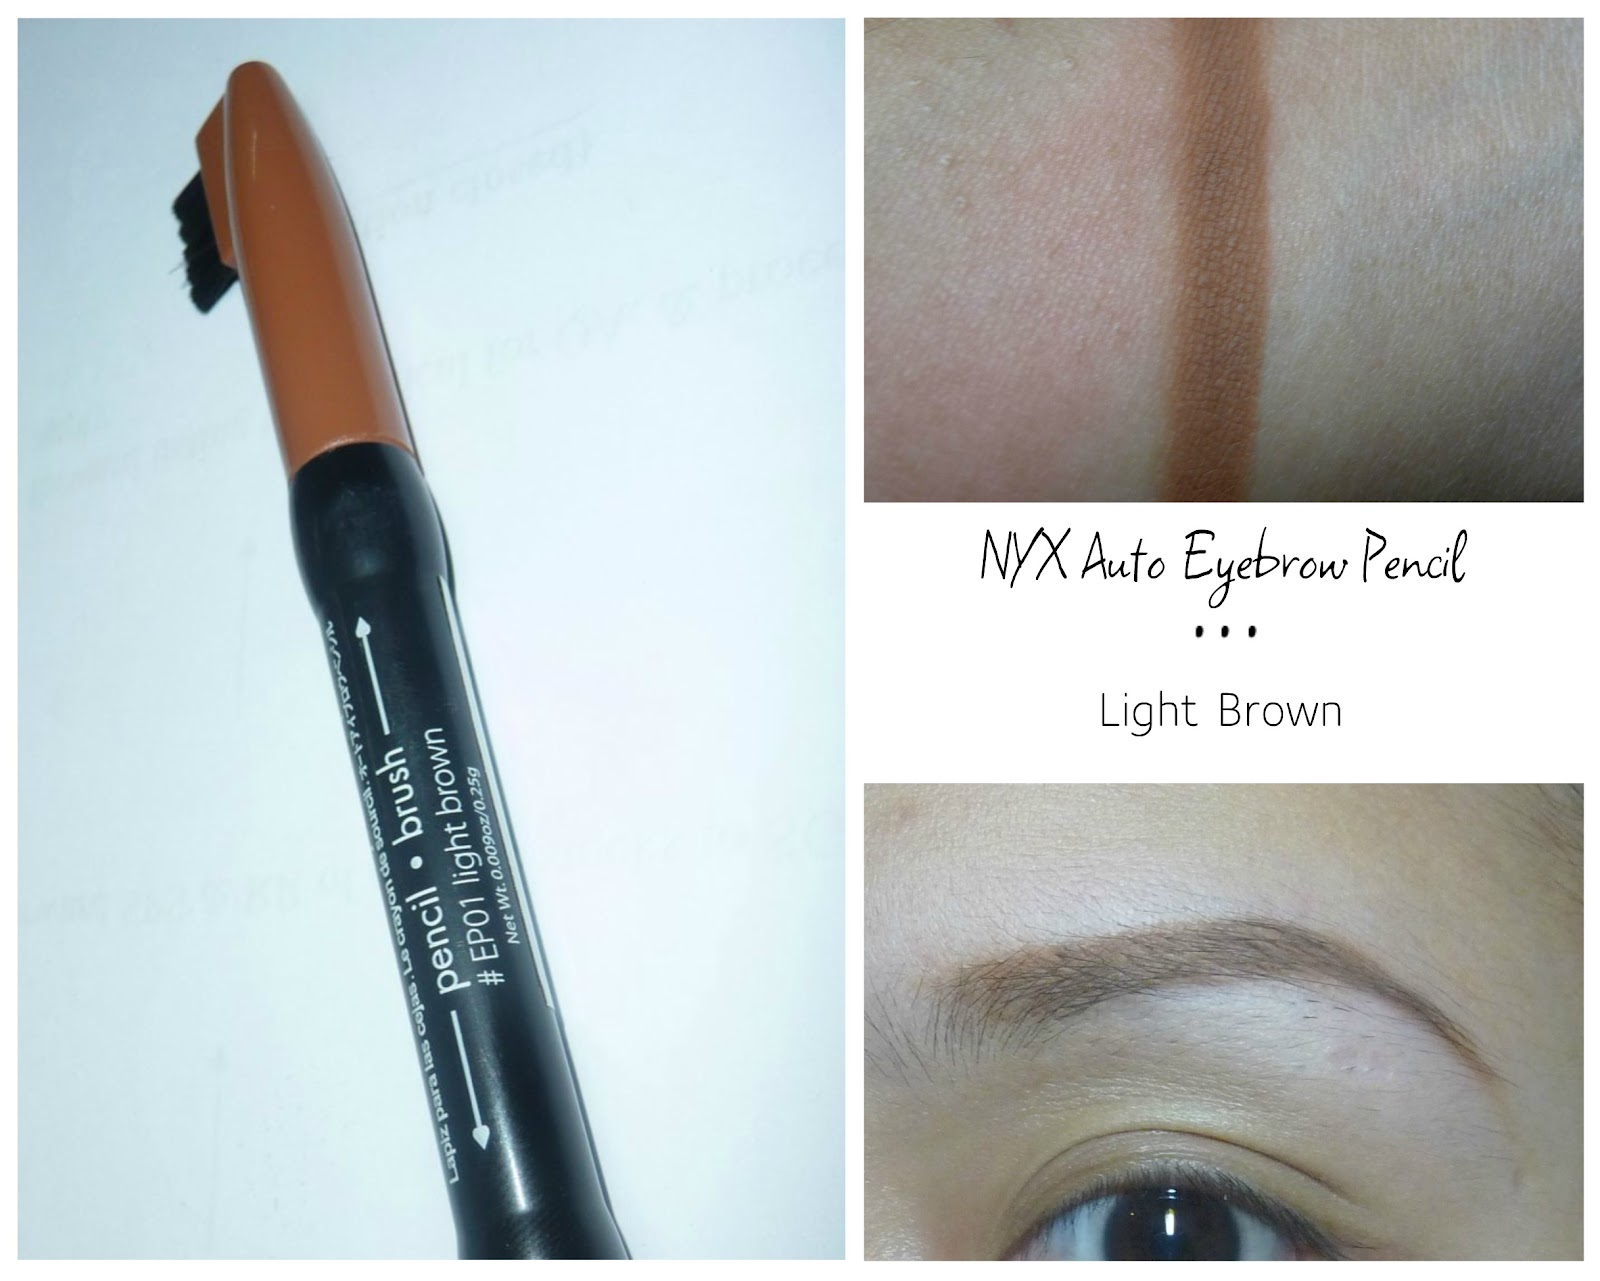 Sep 27,  · Benefit Goof Proof Eyebrow Pencil Steal the look of makeup artists' envy-inducing eyebrows with this long-wearing pencil. The teardrop-shaped tip glides on easily, building natural-looking color slowly so even brow beginners can avoid mistakes/5().